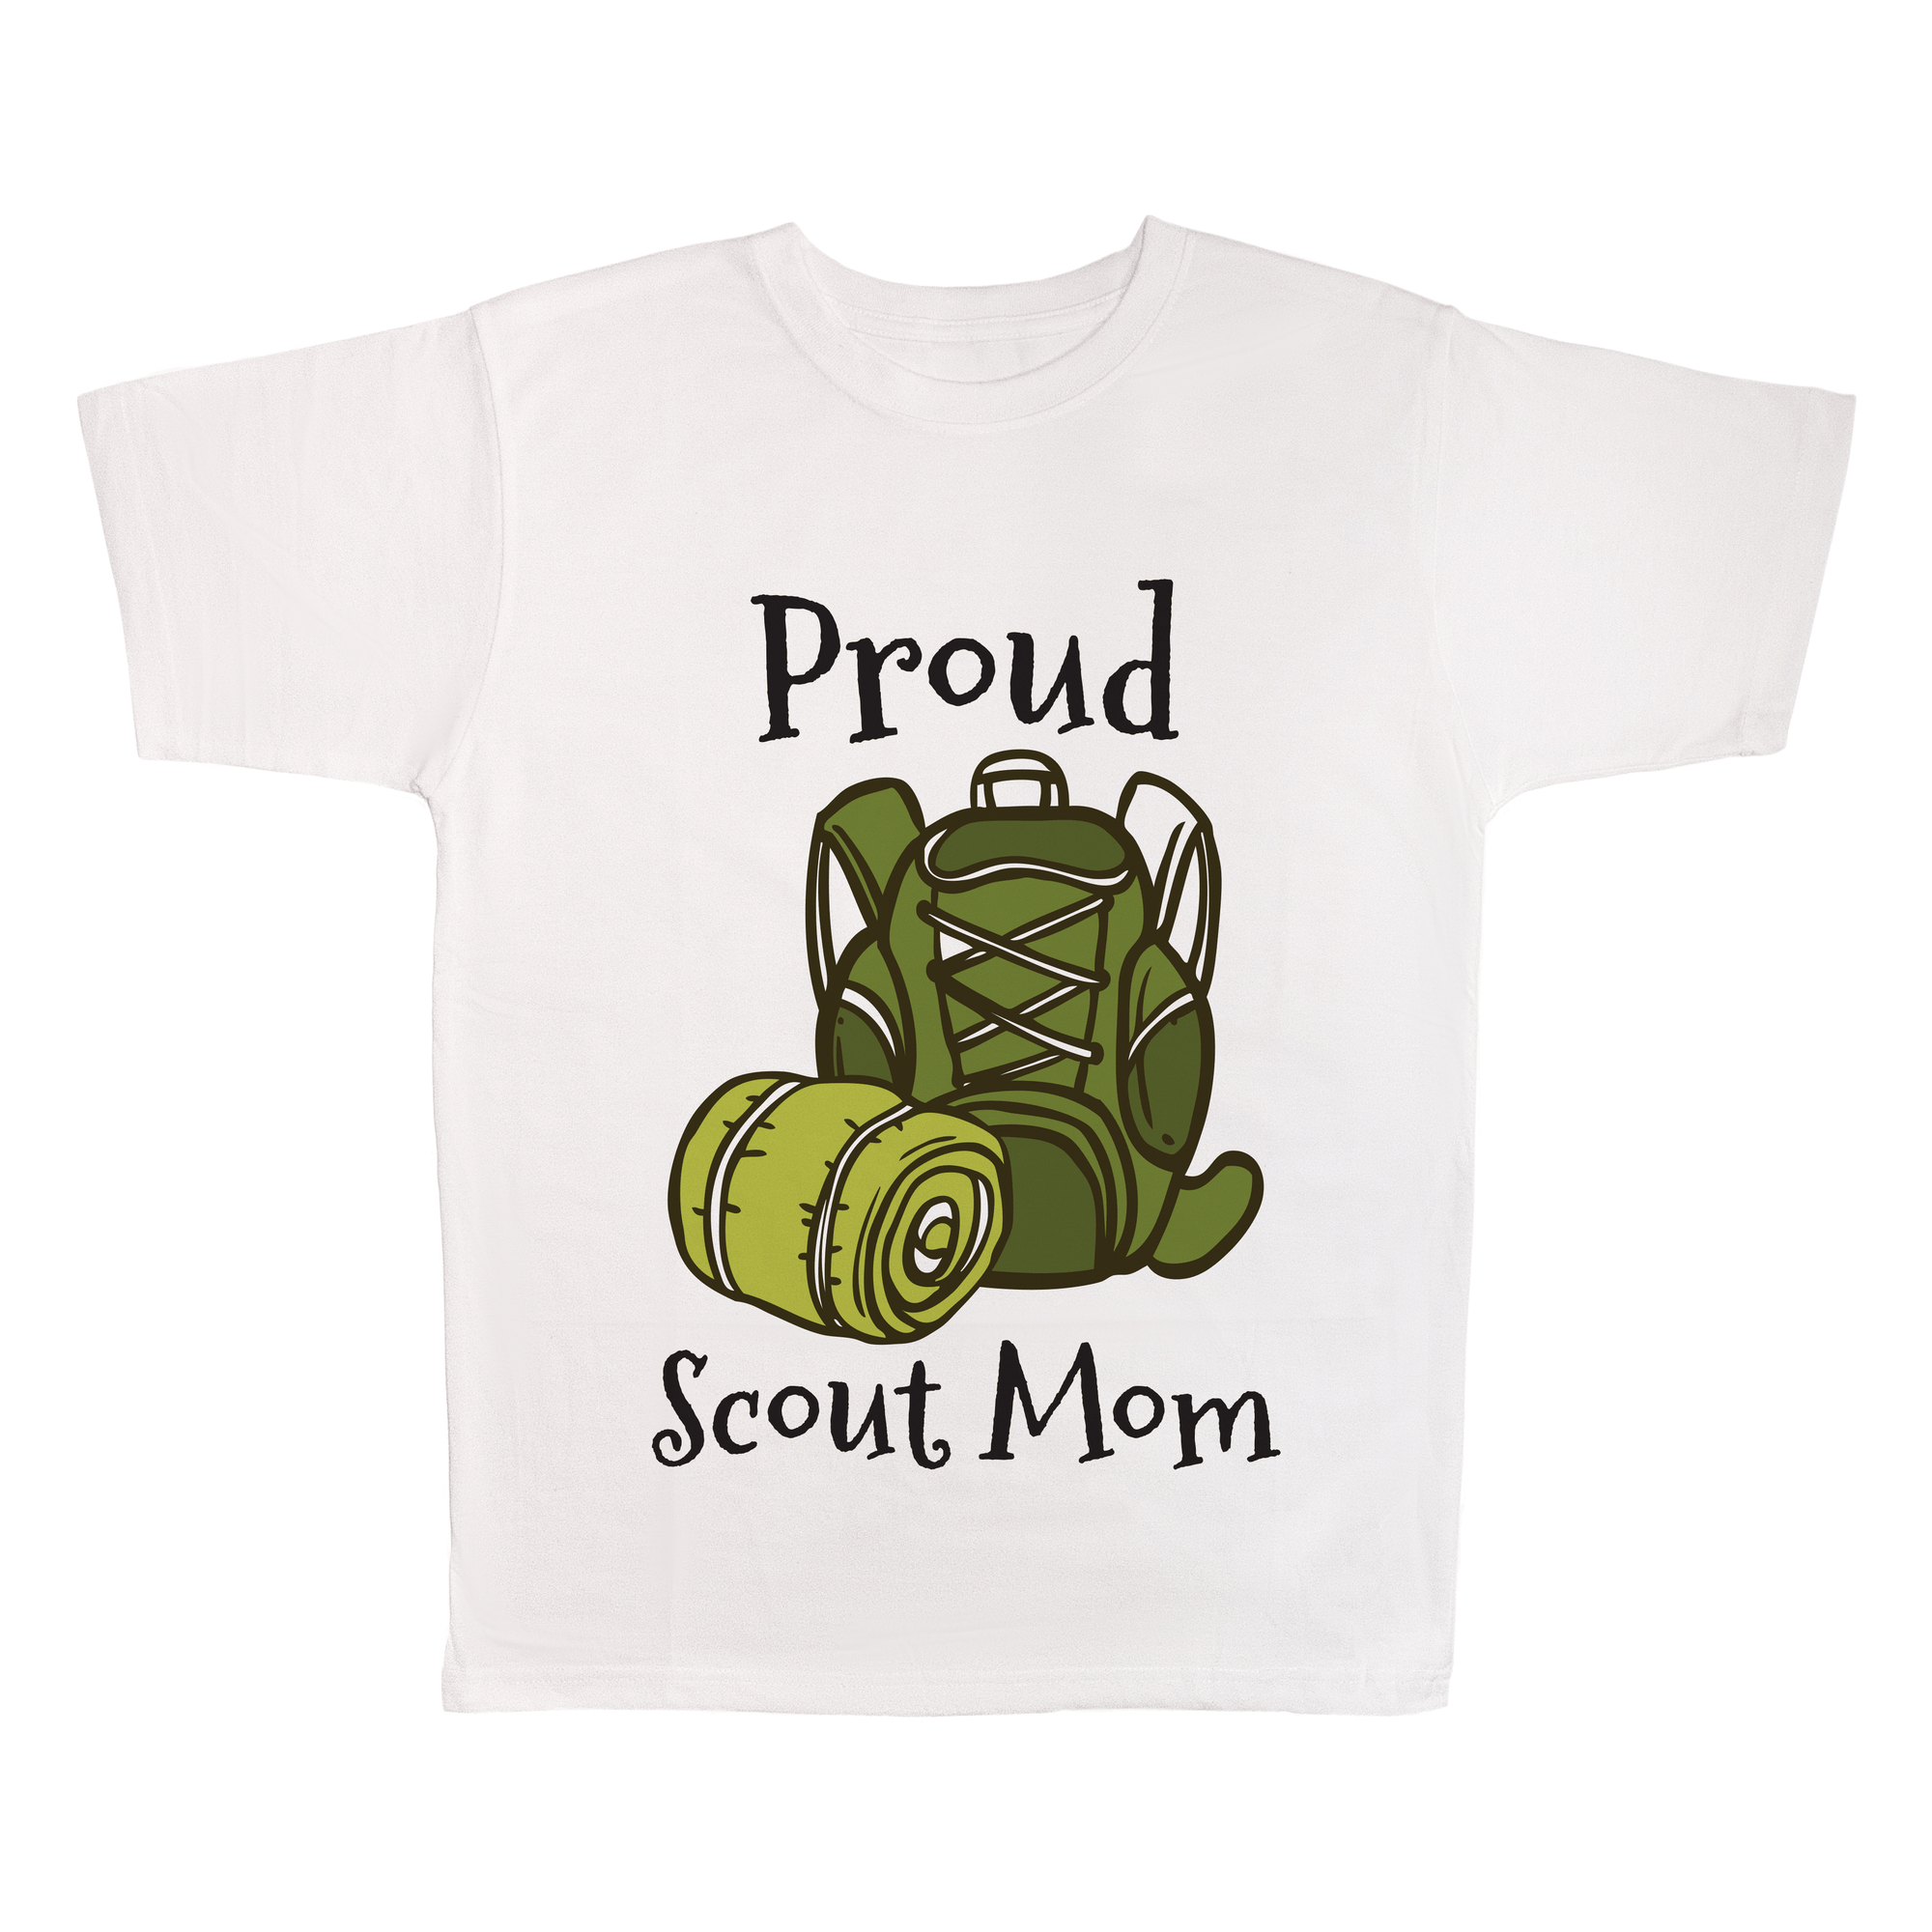 Proud Scout Mom, 100% Polyester Adult Shirt